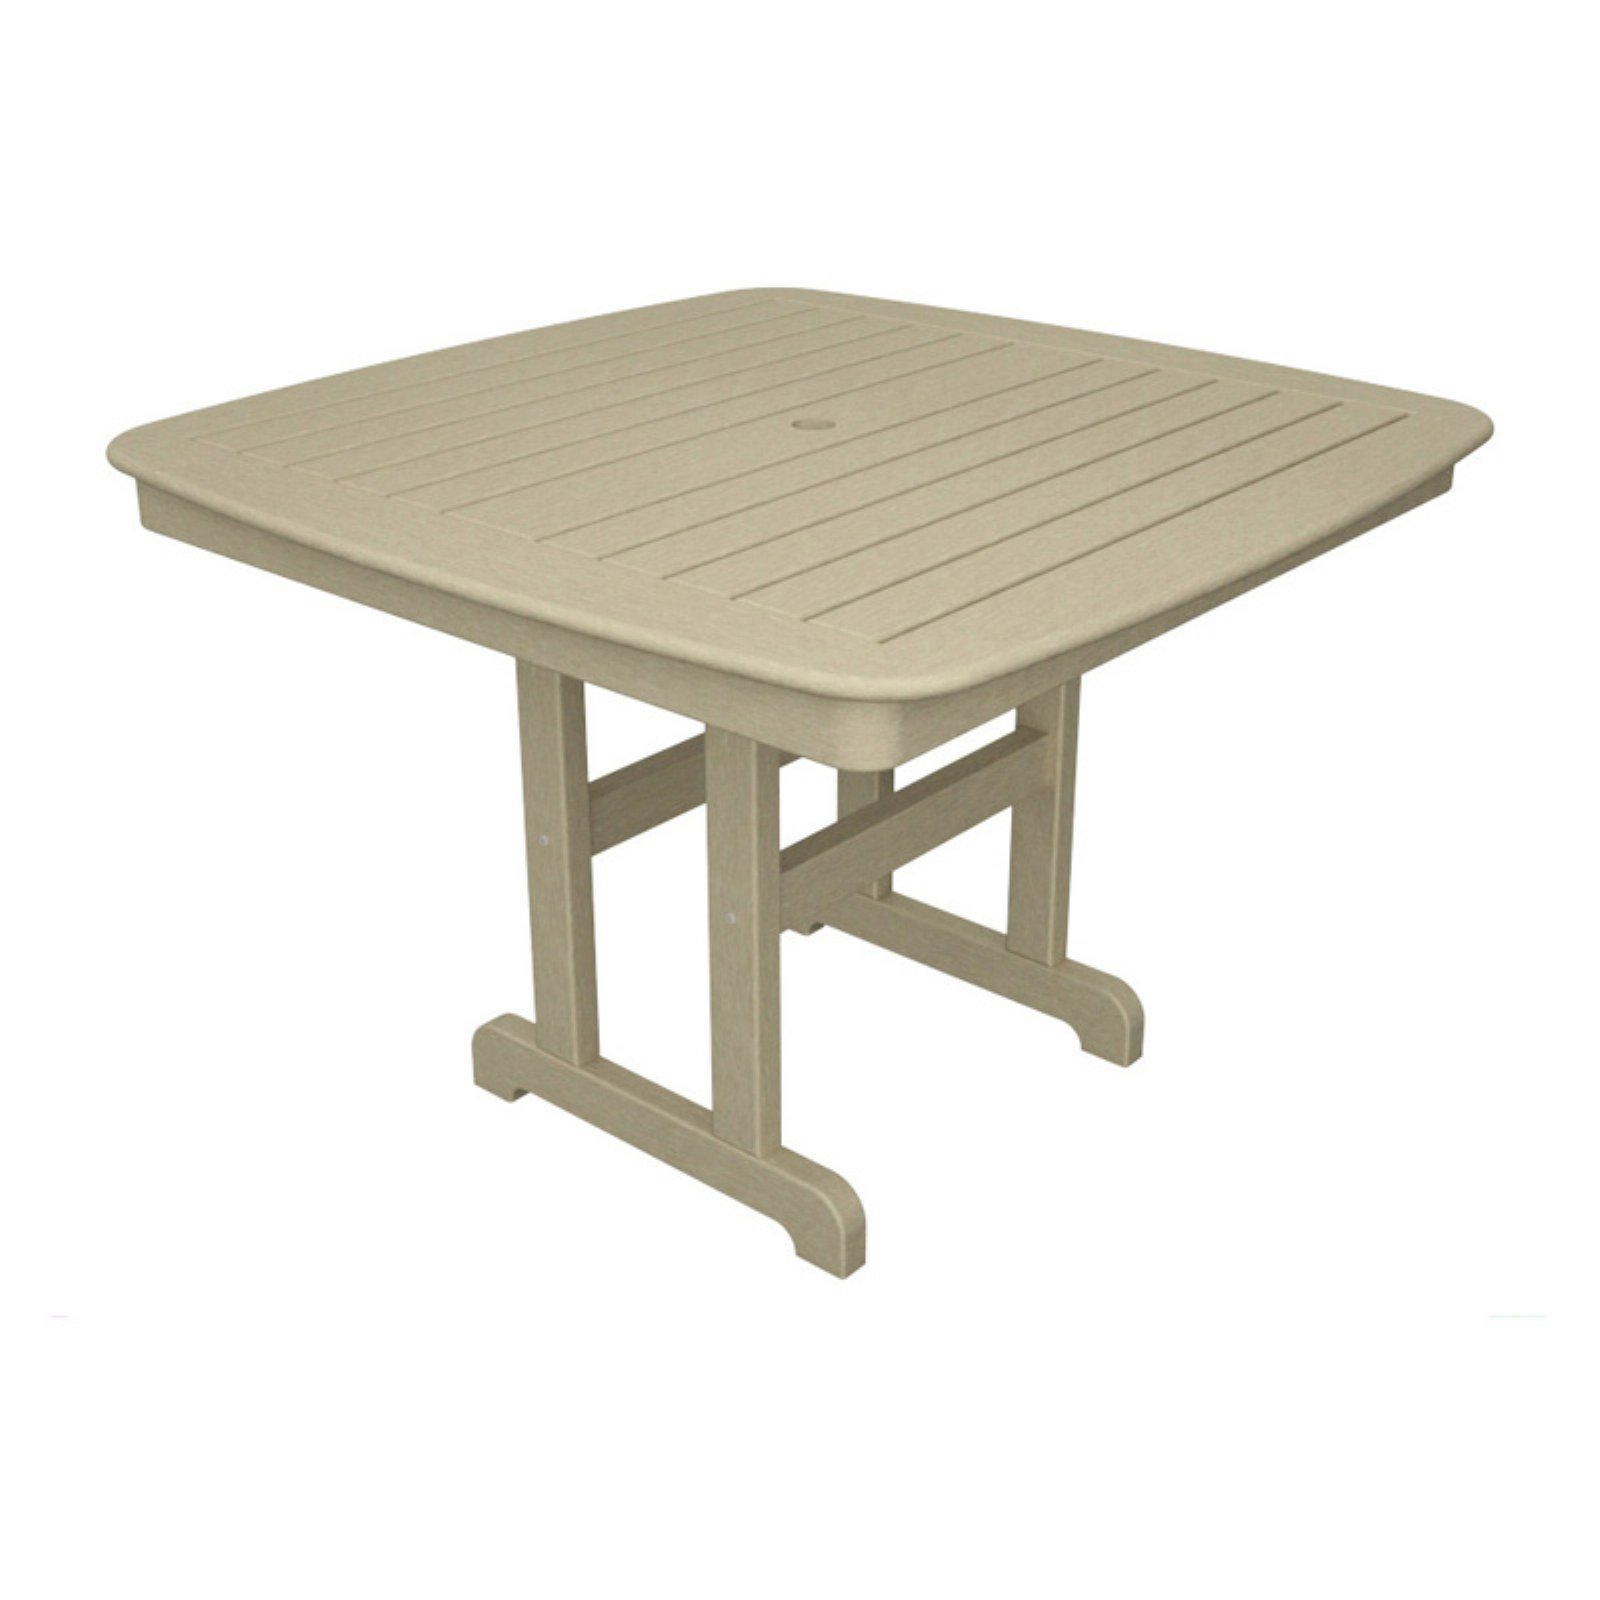 trex outdoor furniture recycled plastic yacht club patio dining table